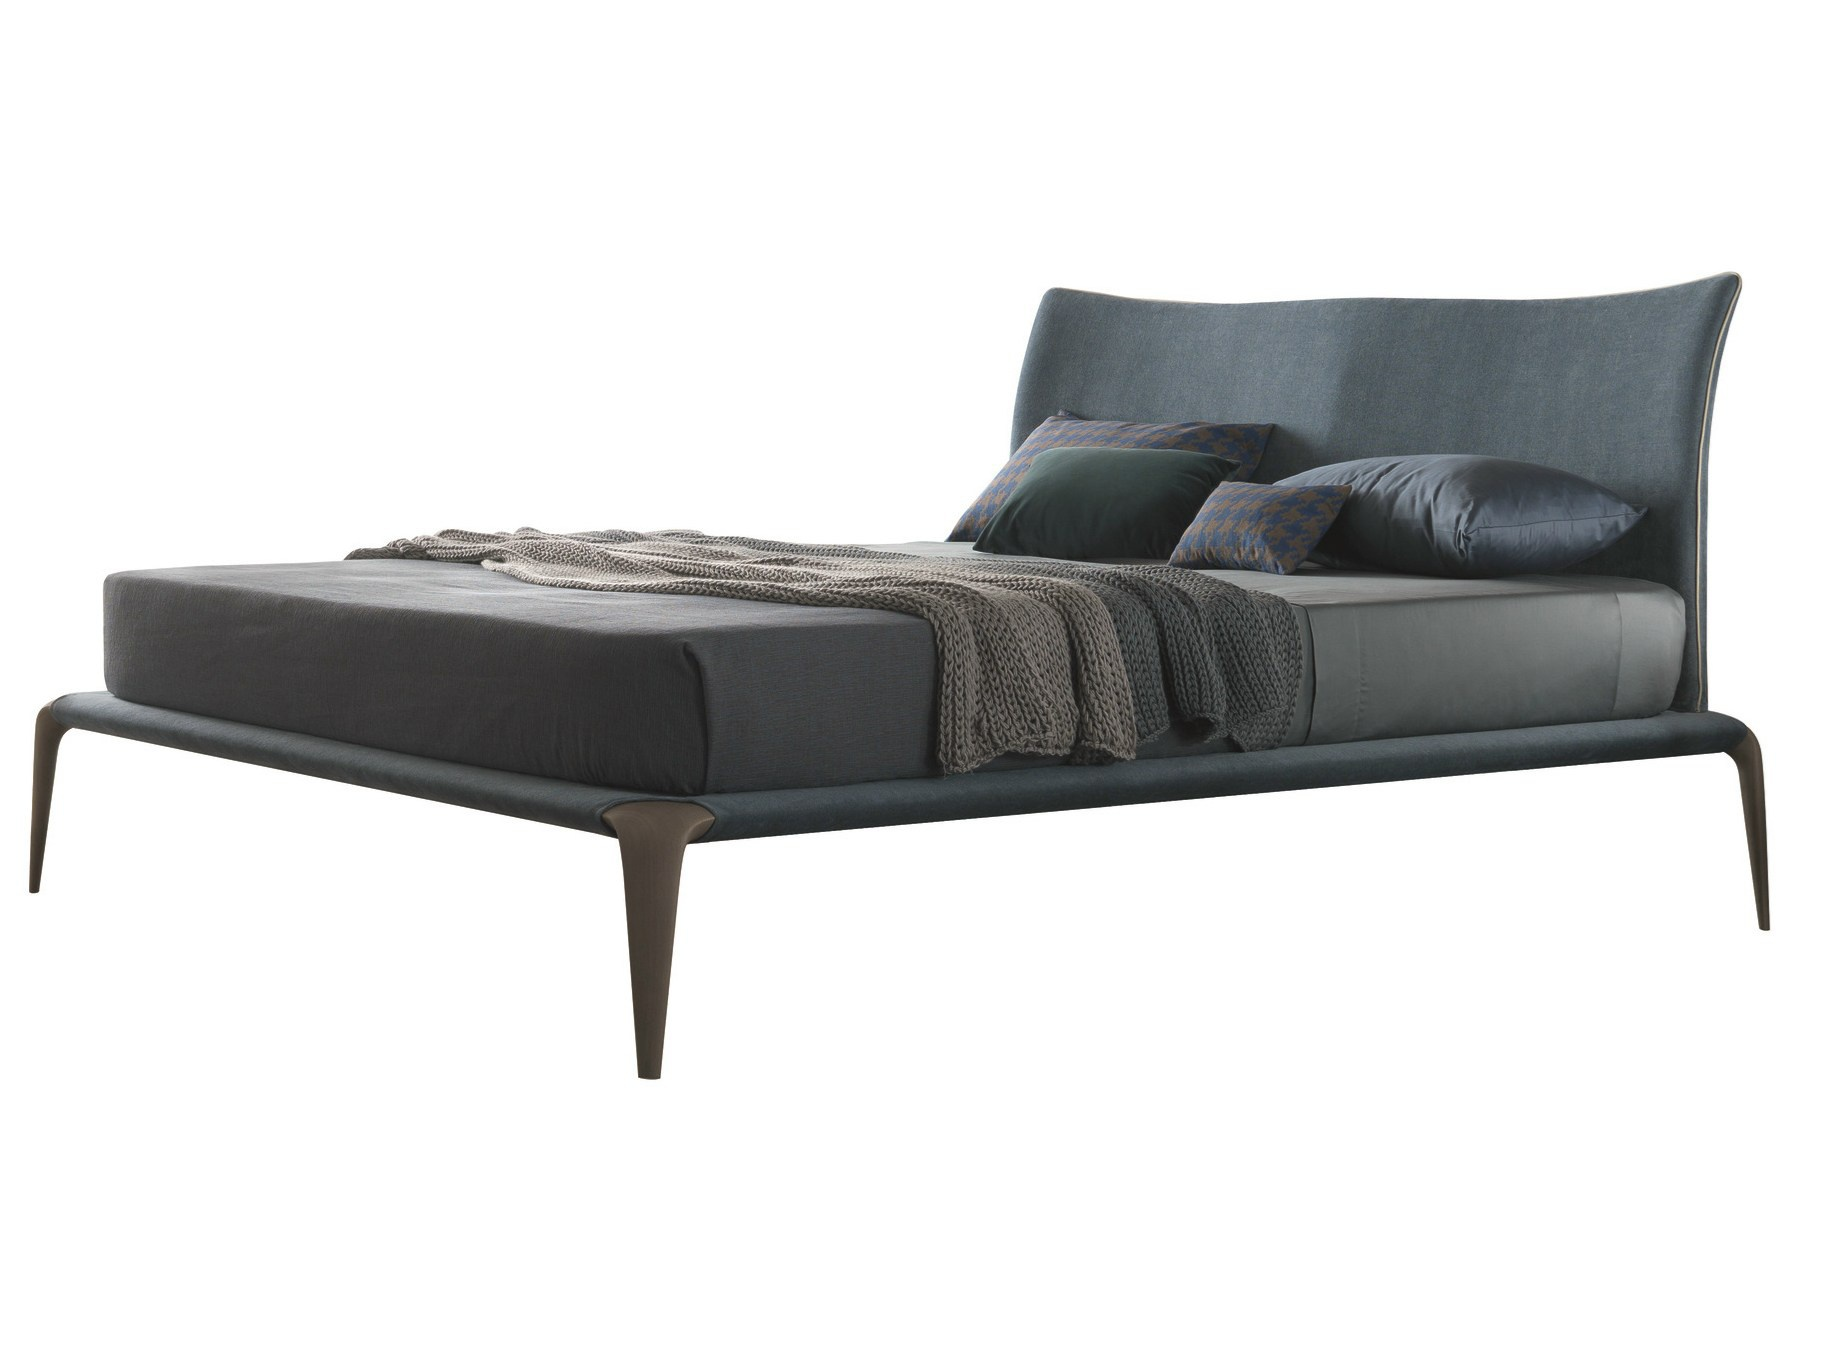 double bed with wooden legs in fabric margareth